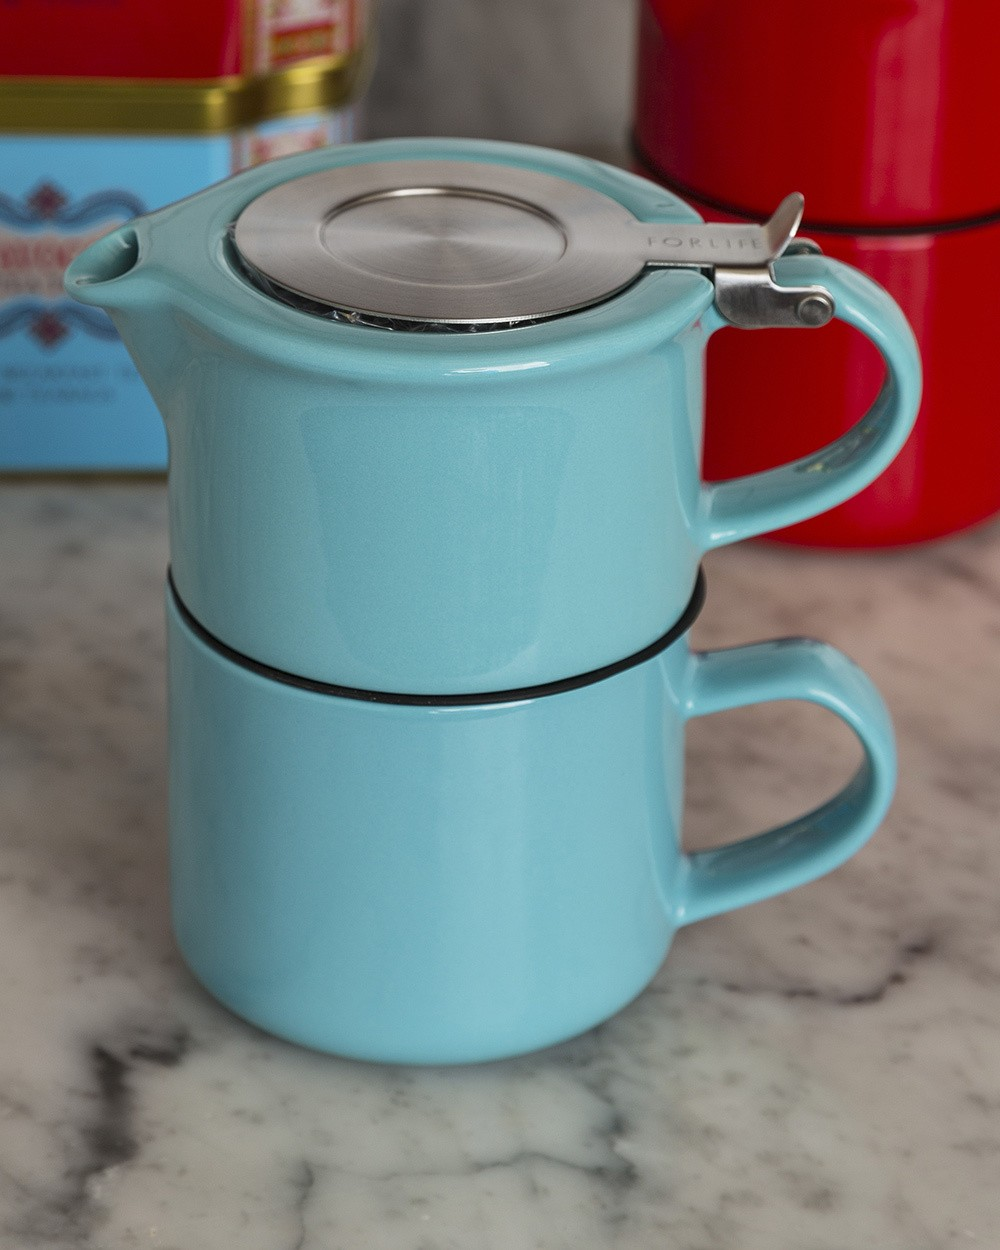 Tea for One - Pot and Cup in Turquoise